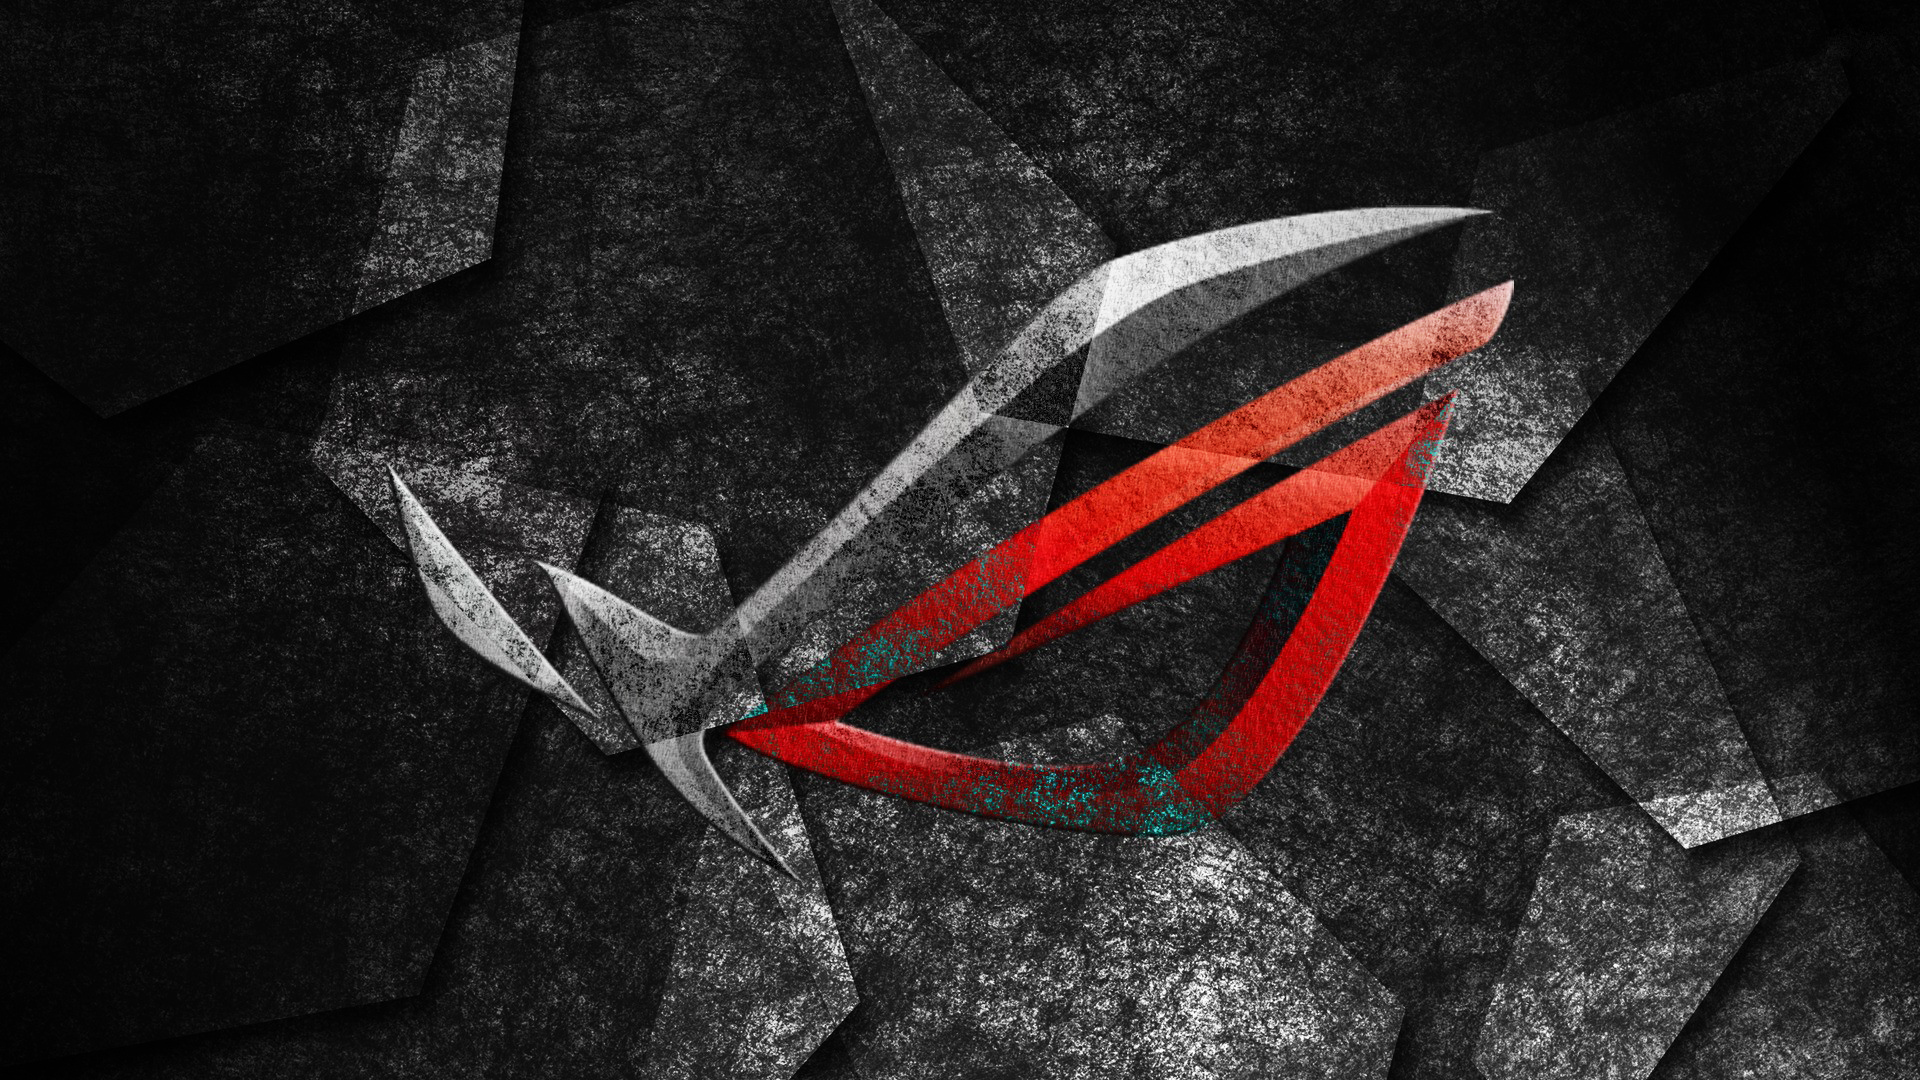 asus rog republic of gamers logo hd 1920x1080 1080p wallpaper and 1920x1080